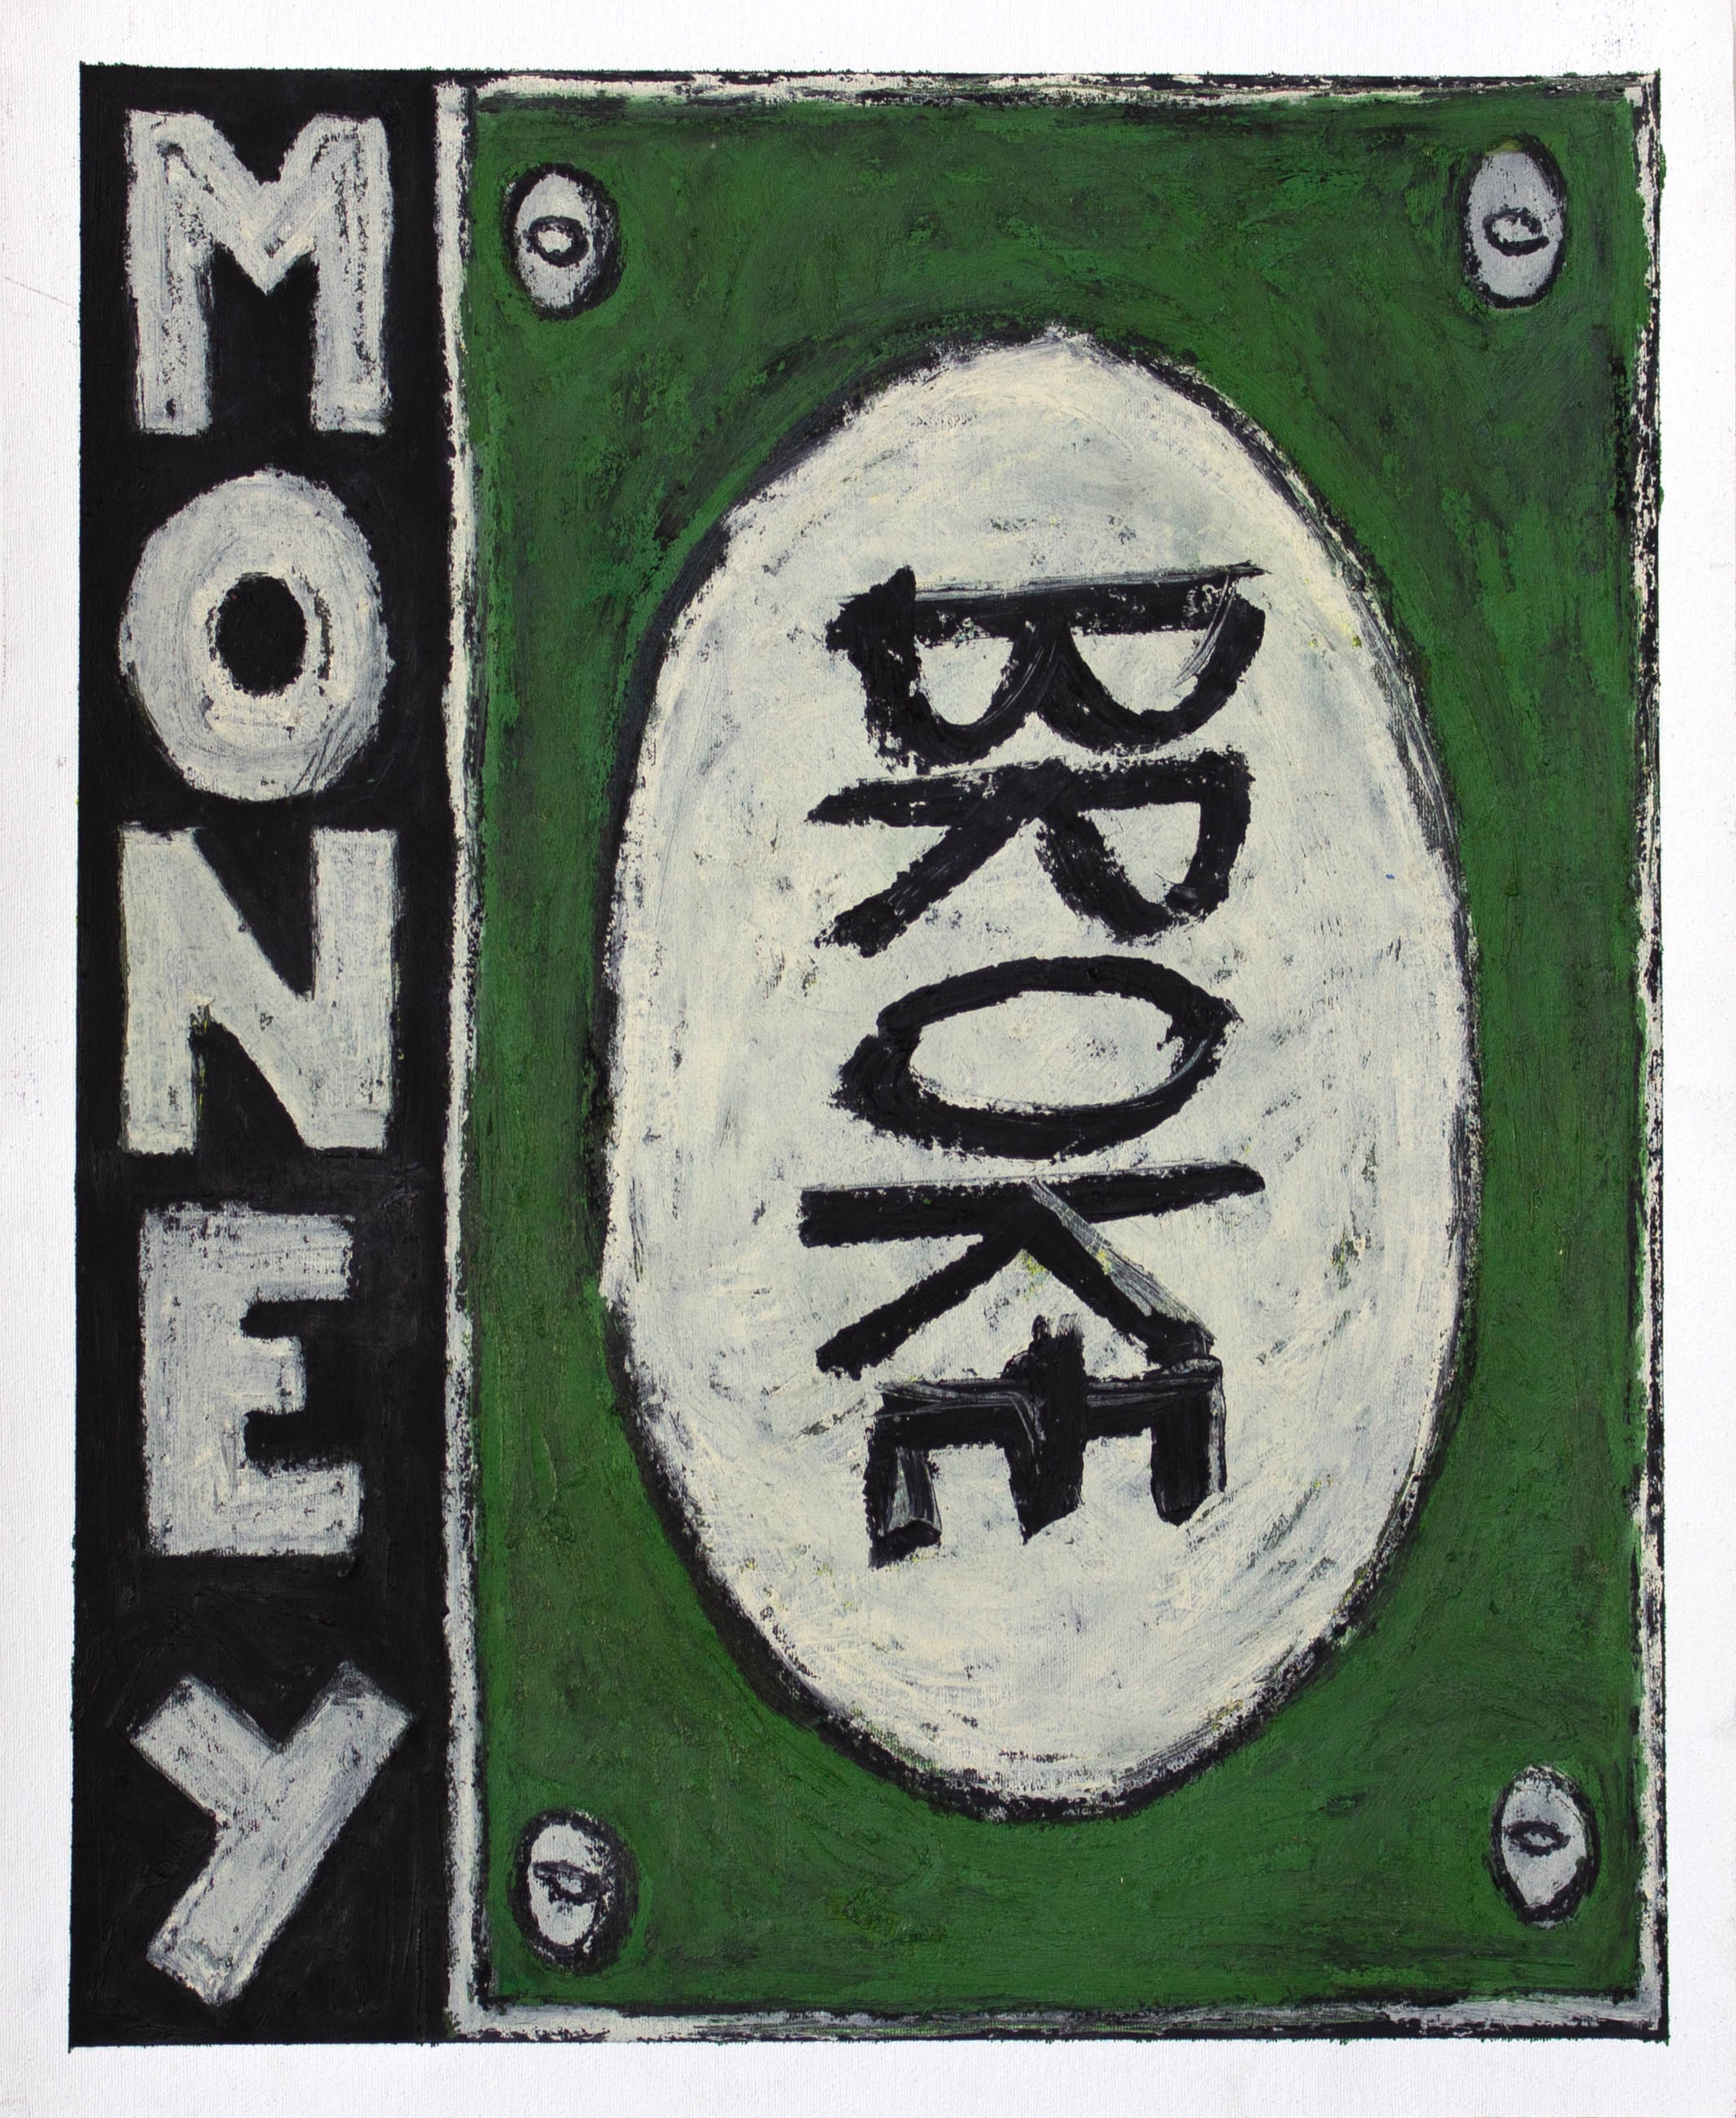 """""""BROKE MONEY"""" / 2019 OILSTICK ON UNSTRETCHED CANVAS FRAMED IN WHITE WITH ARTGLASS AR70 42 X 51 CM SOLD"""